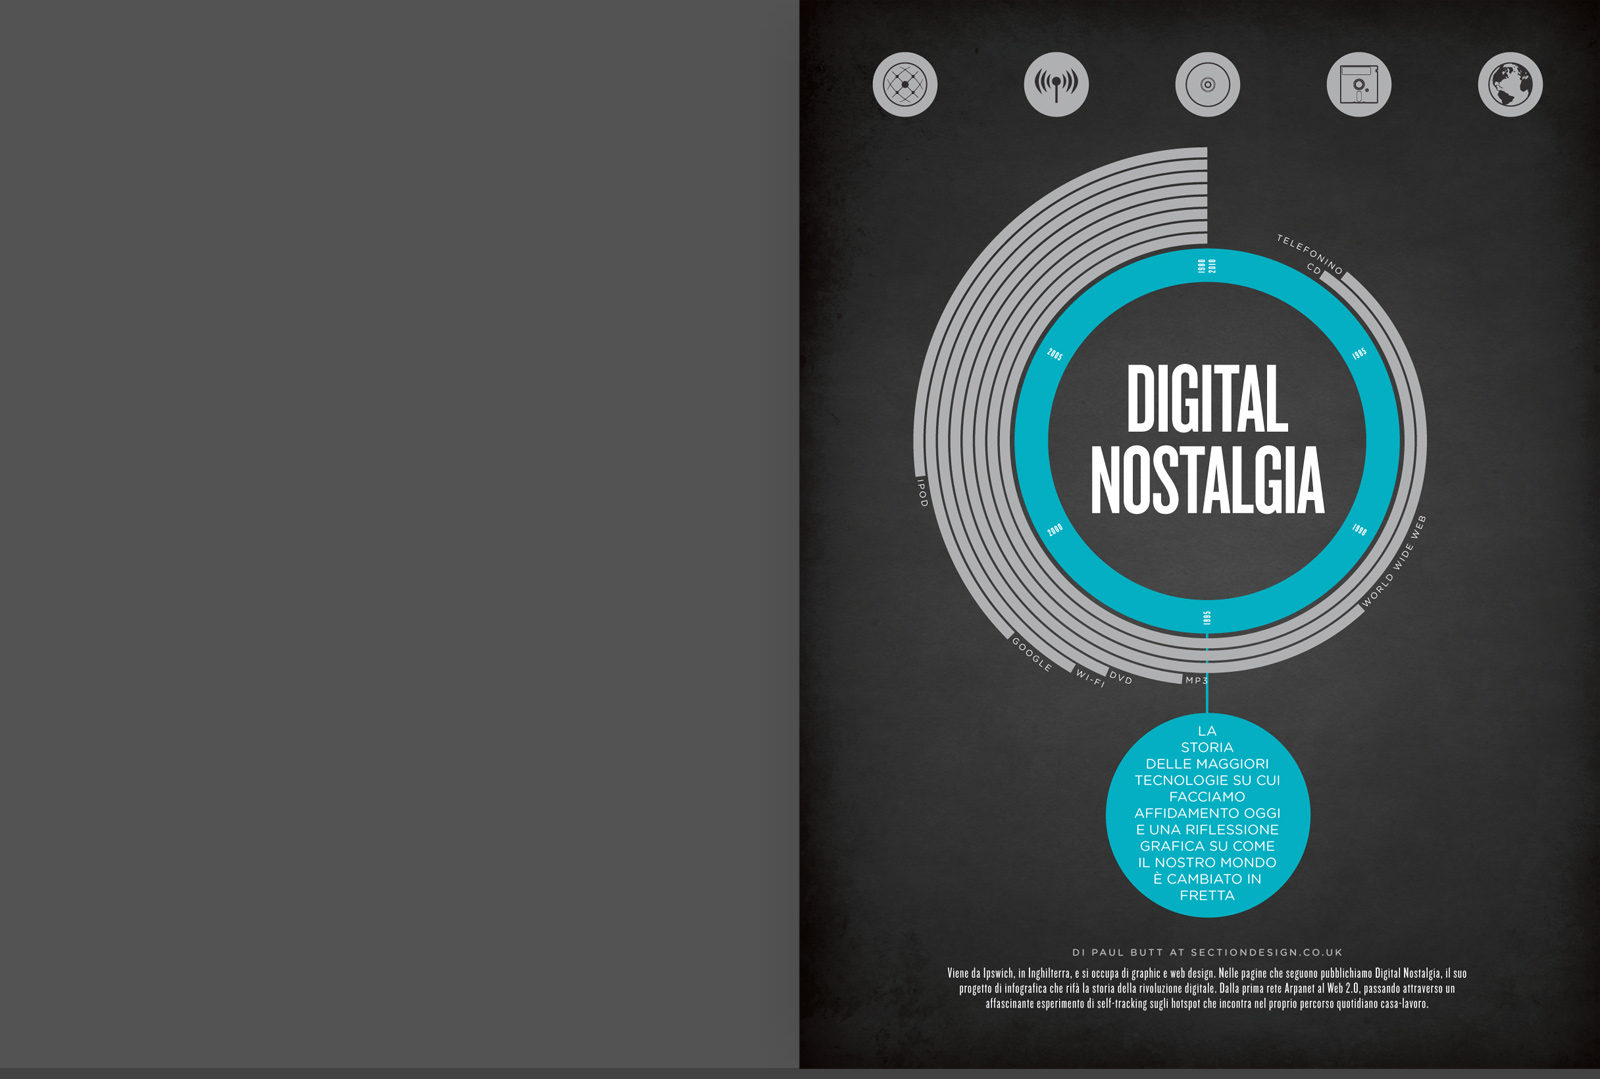 digital nostalgia wired italy section design